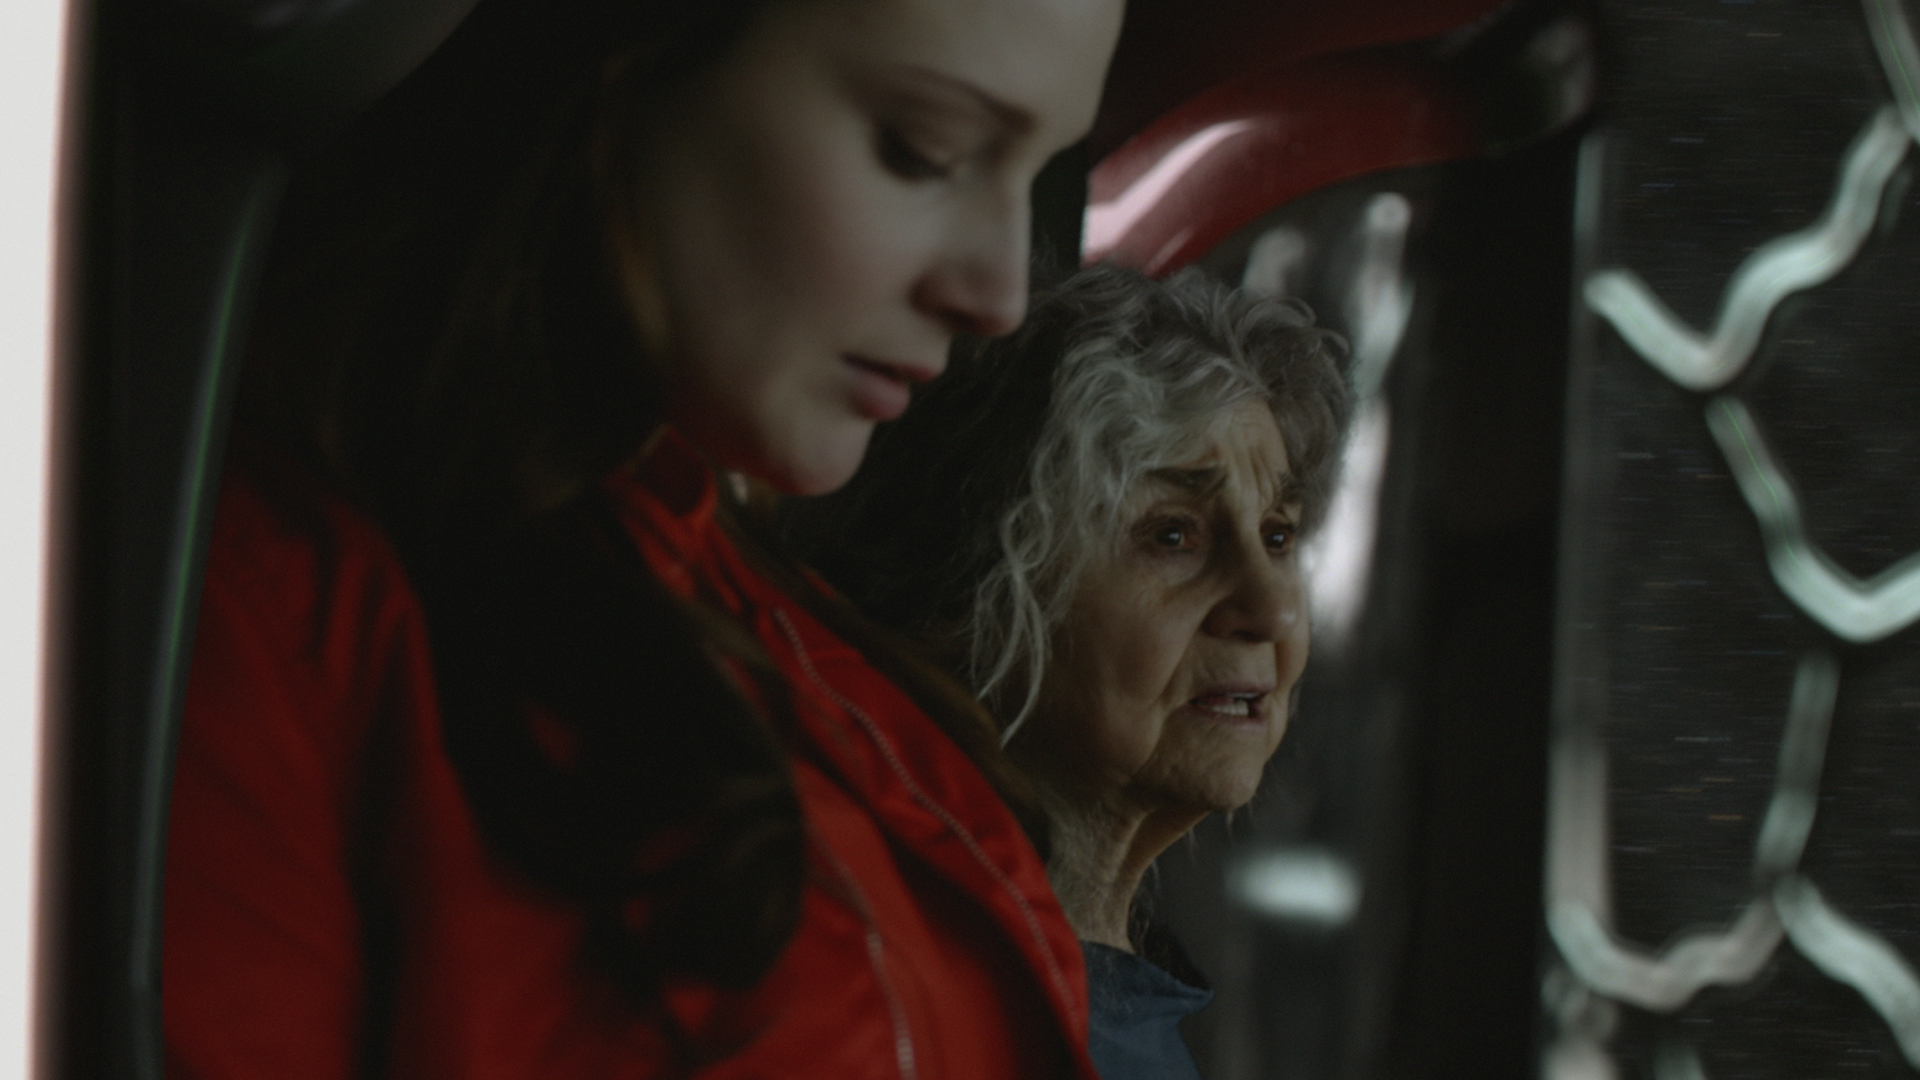 Beautiful Dreamer - Mom (Jo Armeniox) and an older Amy (Lynn Cohen) united at last in travel, March 2, 2129.